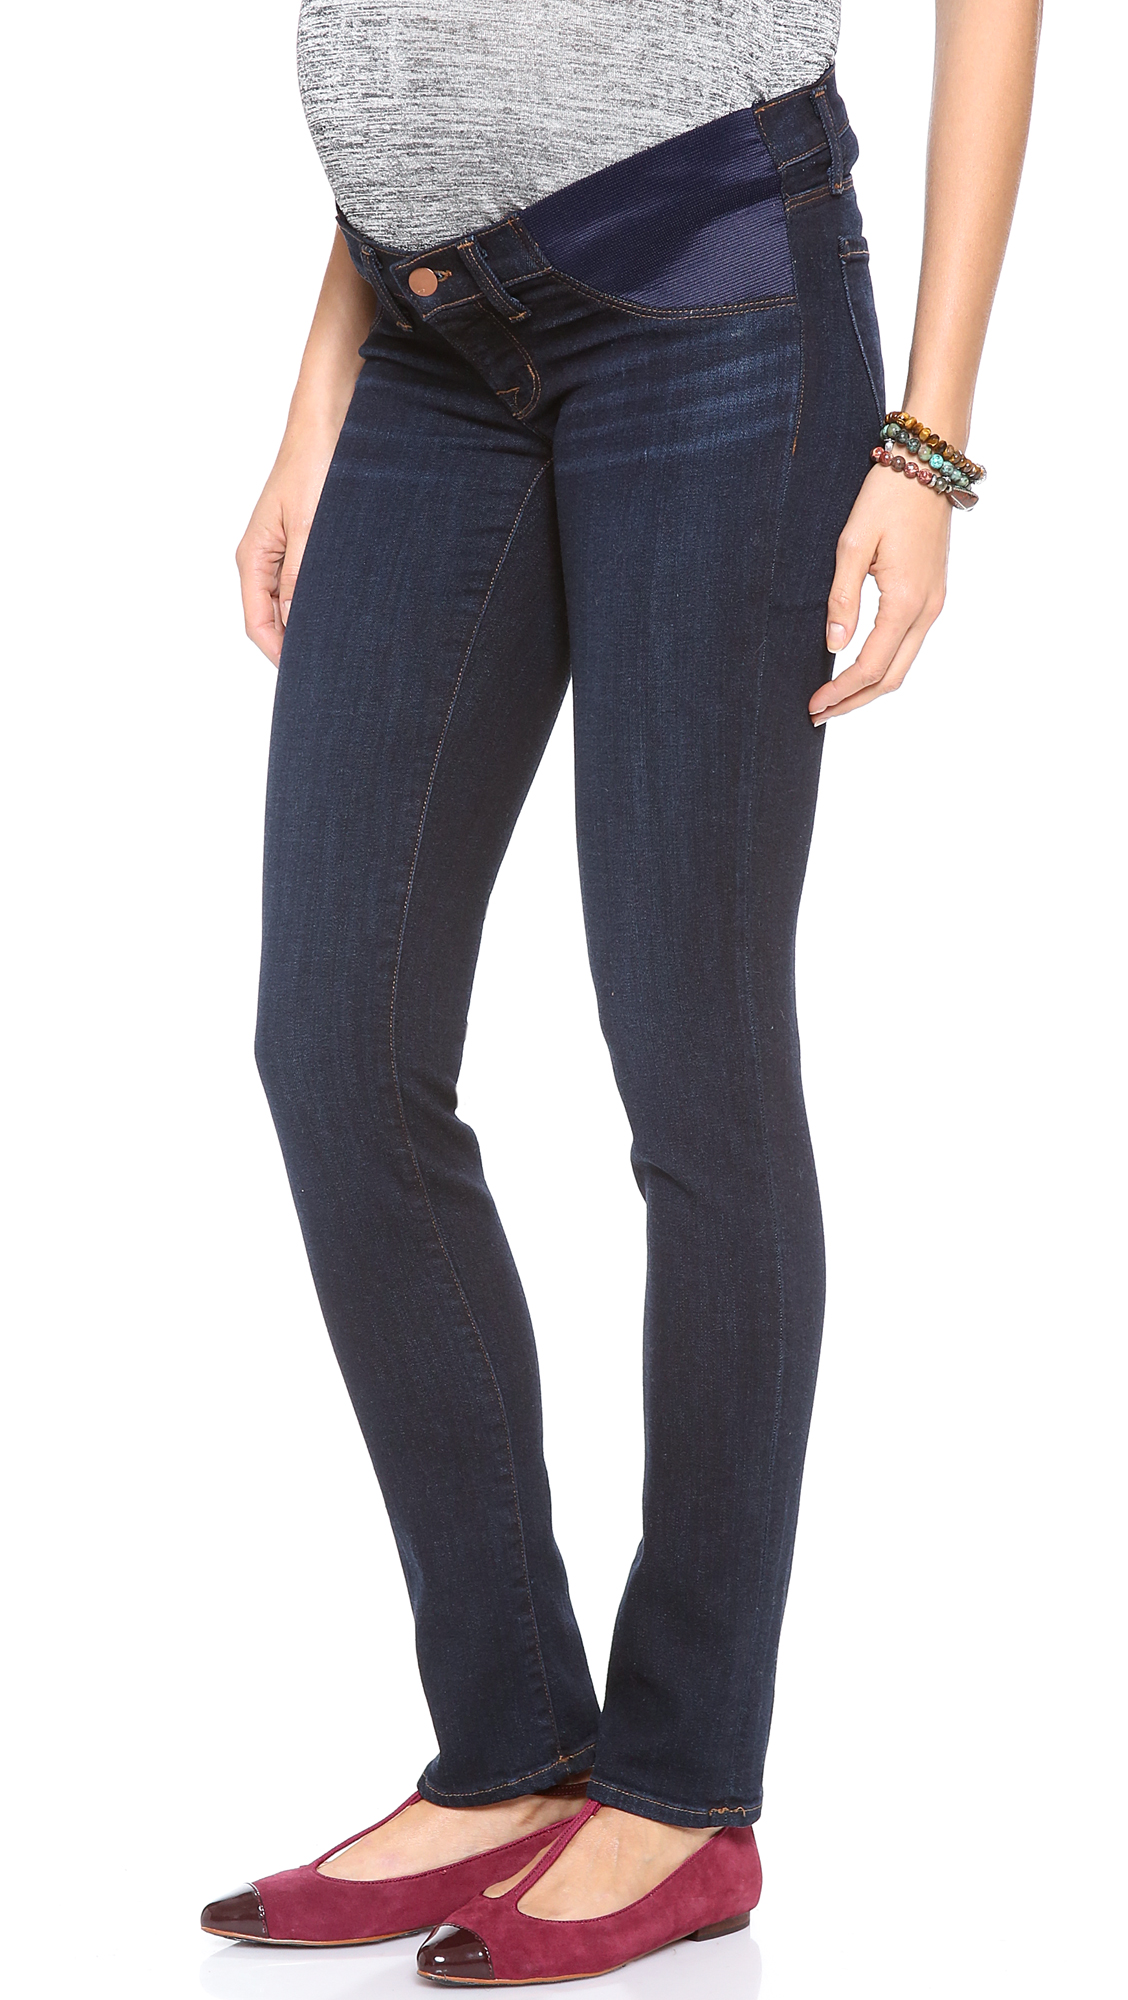 J brand 34112 Mama J Rail Maternity Jeans - Eminence in Blue | Lyst